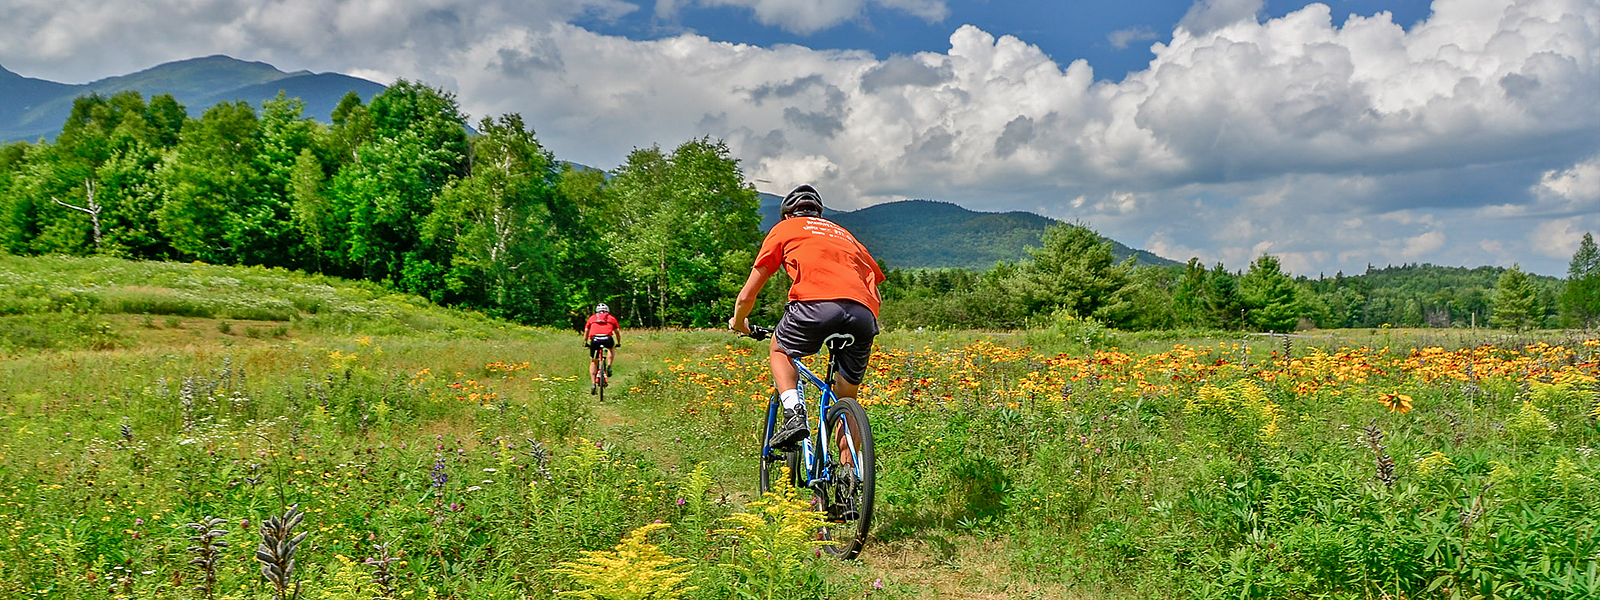 A Beginners Guided Mountain Biking Excursion in the White Mountains